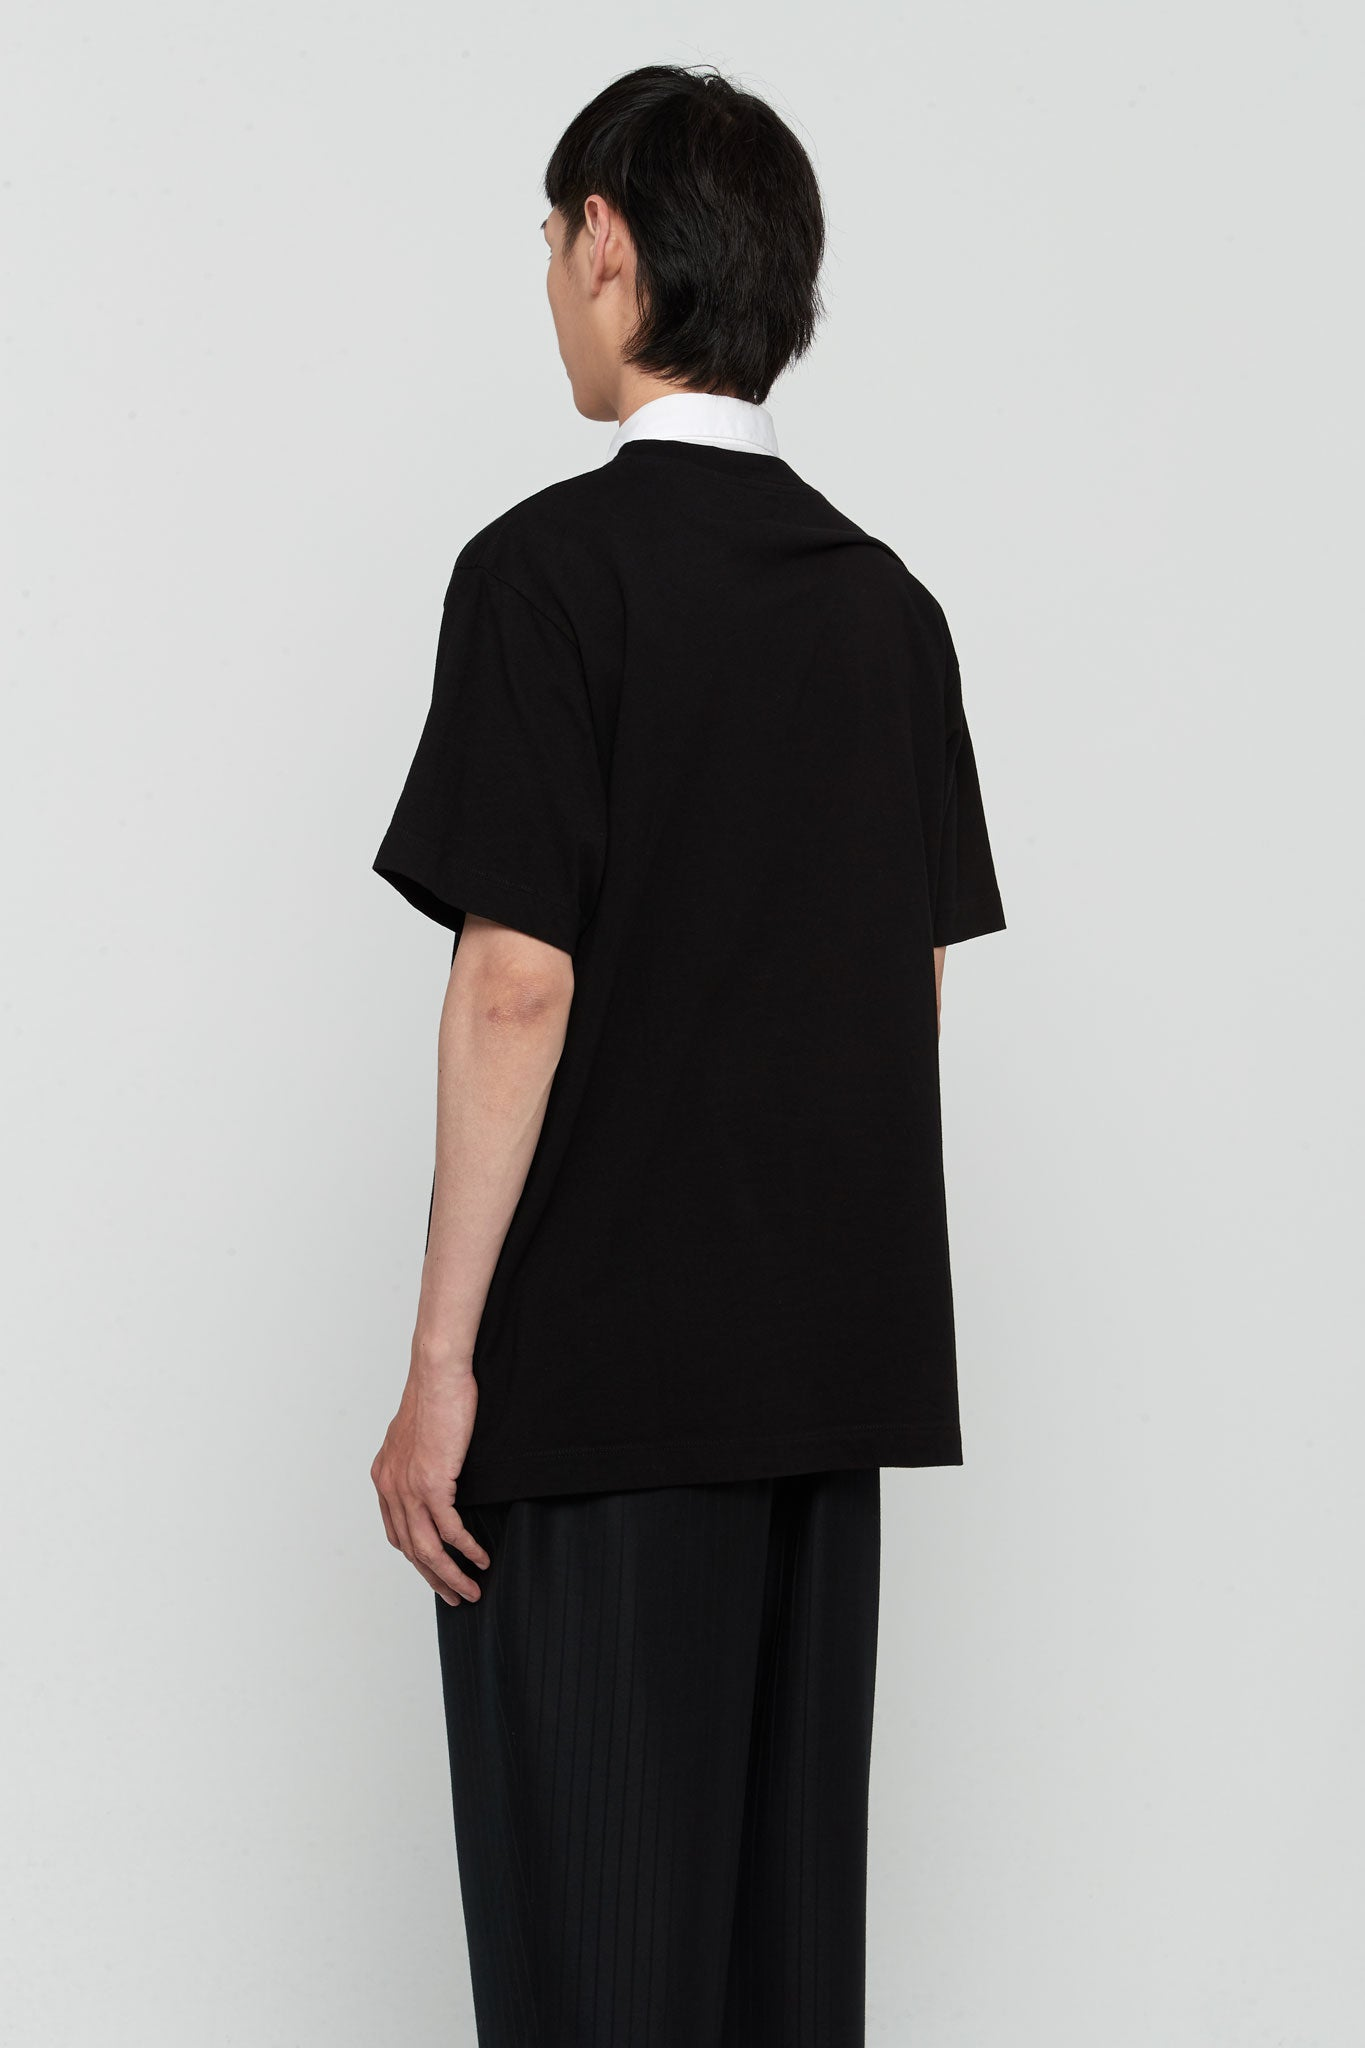 SS19 Tee Black W/ Red